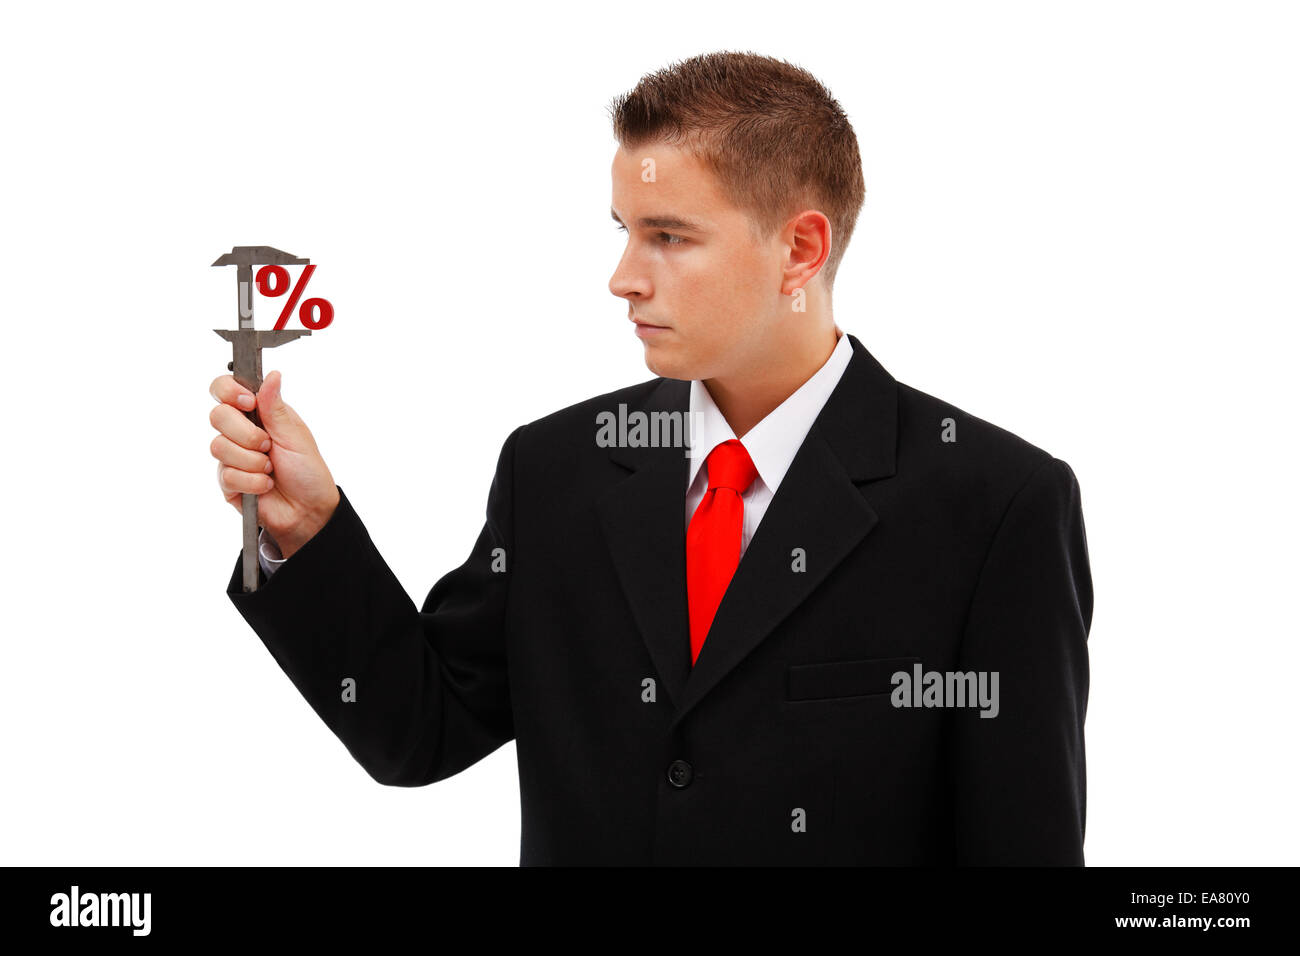 Business man measuring big or small percent with caliper - Stock Image